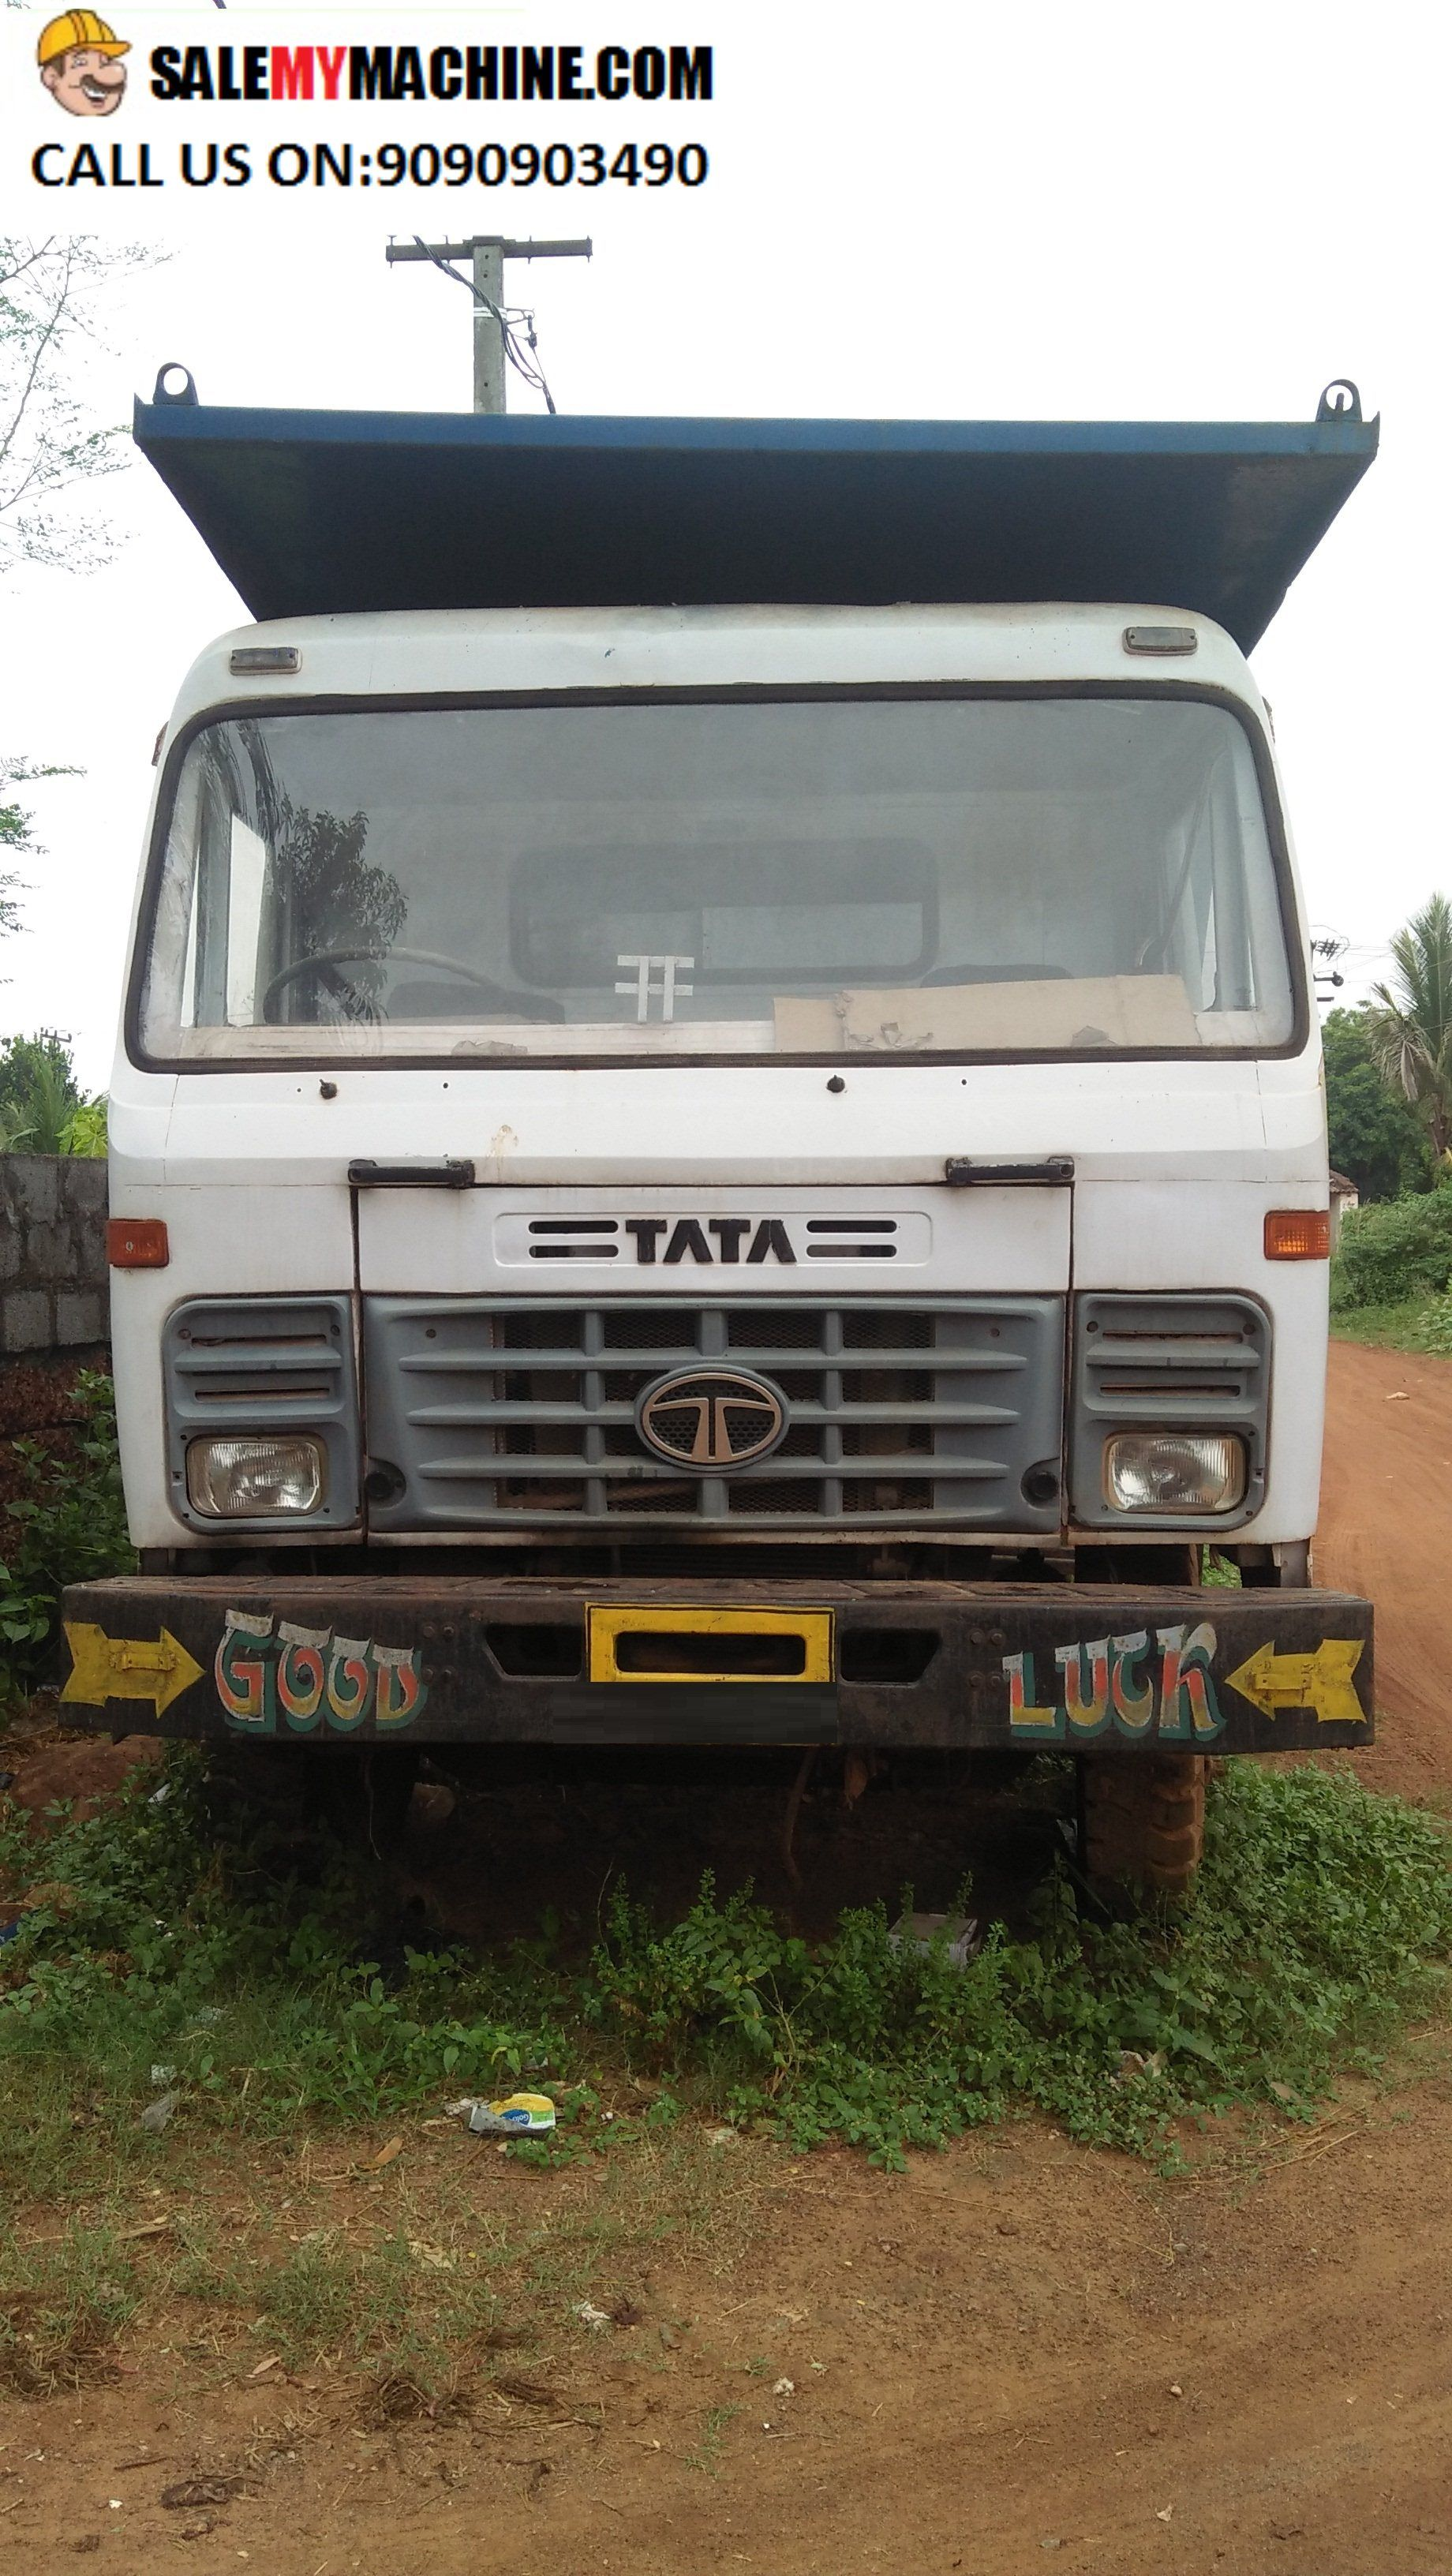 Pin by salemymachine com on Used Hyva for Sale | Used